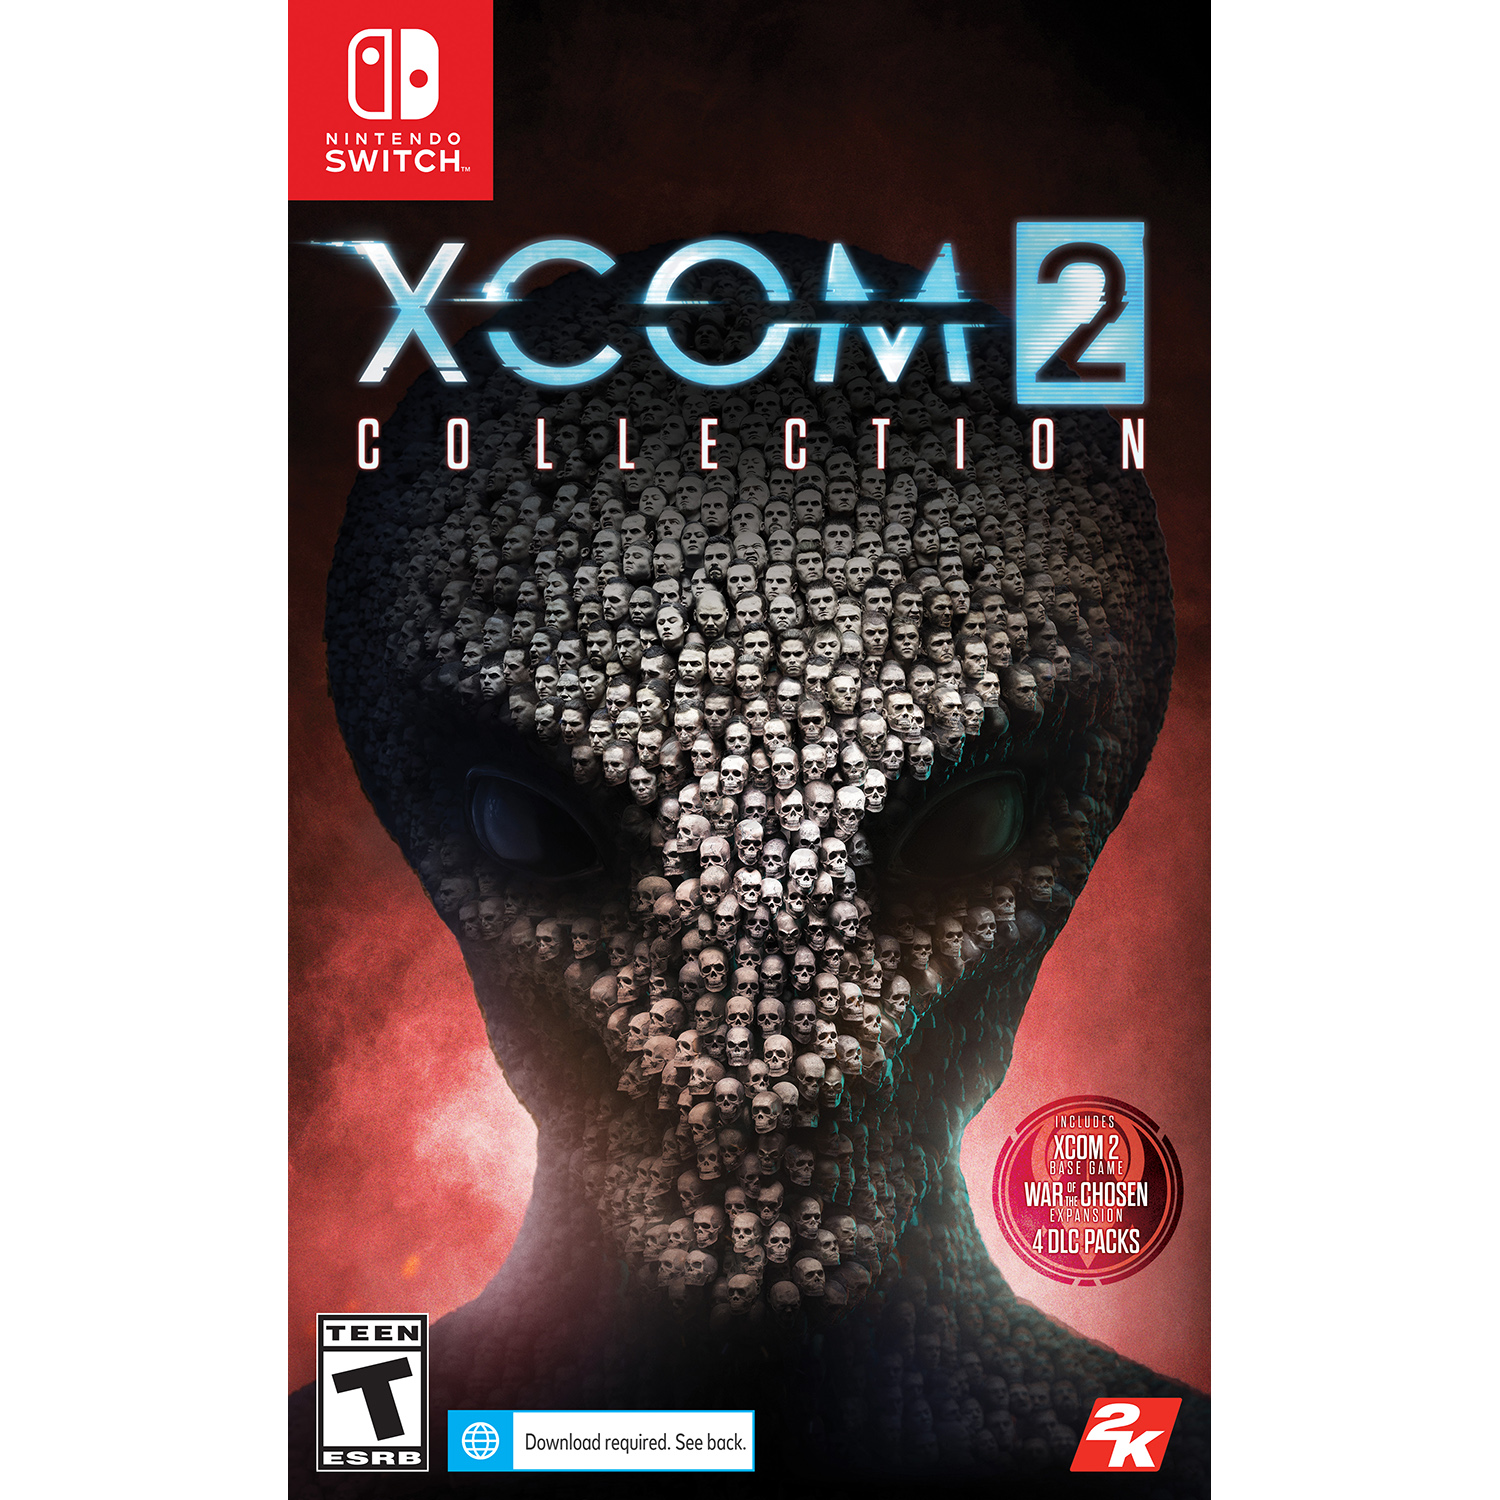 Xcom 2 Collection, Take Two for Nintendo Switch